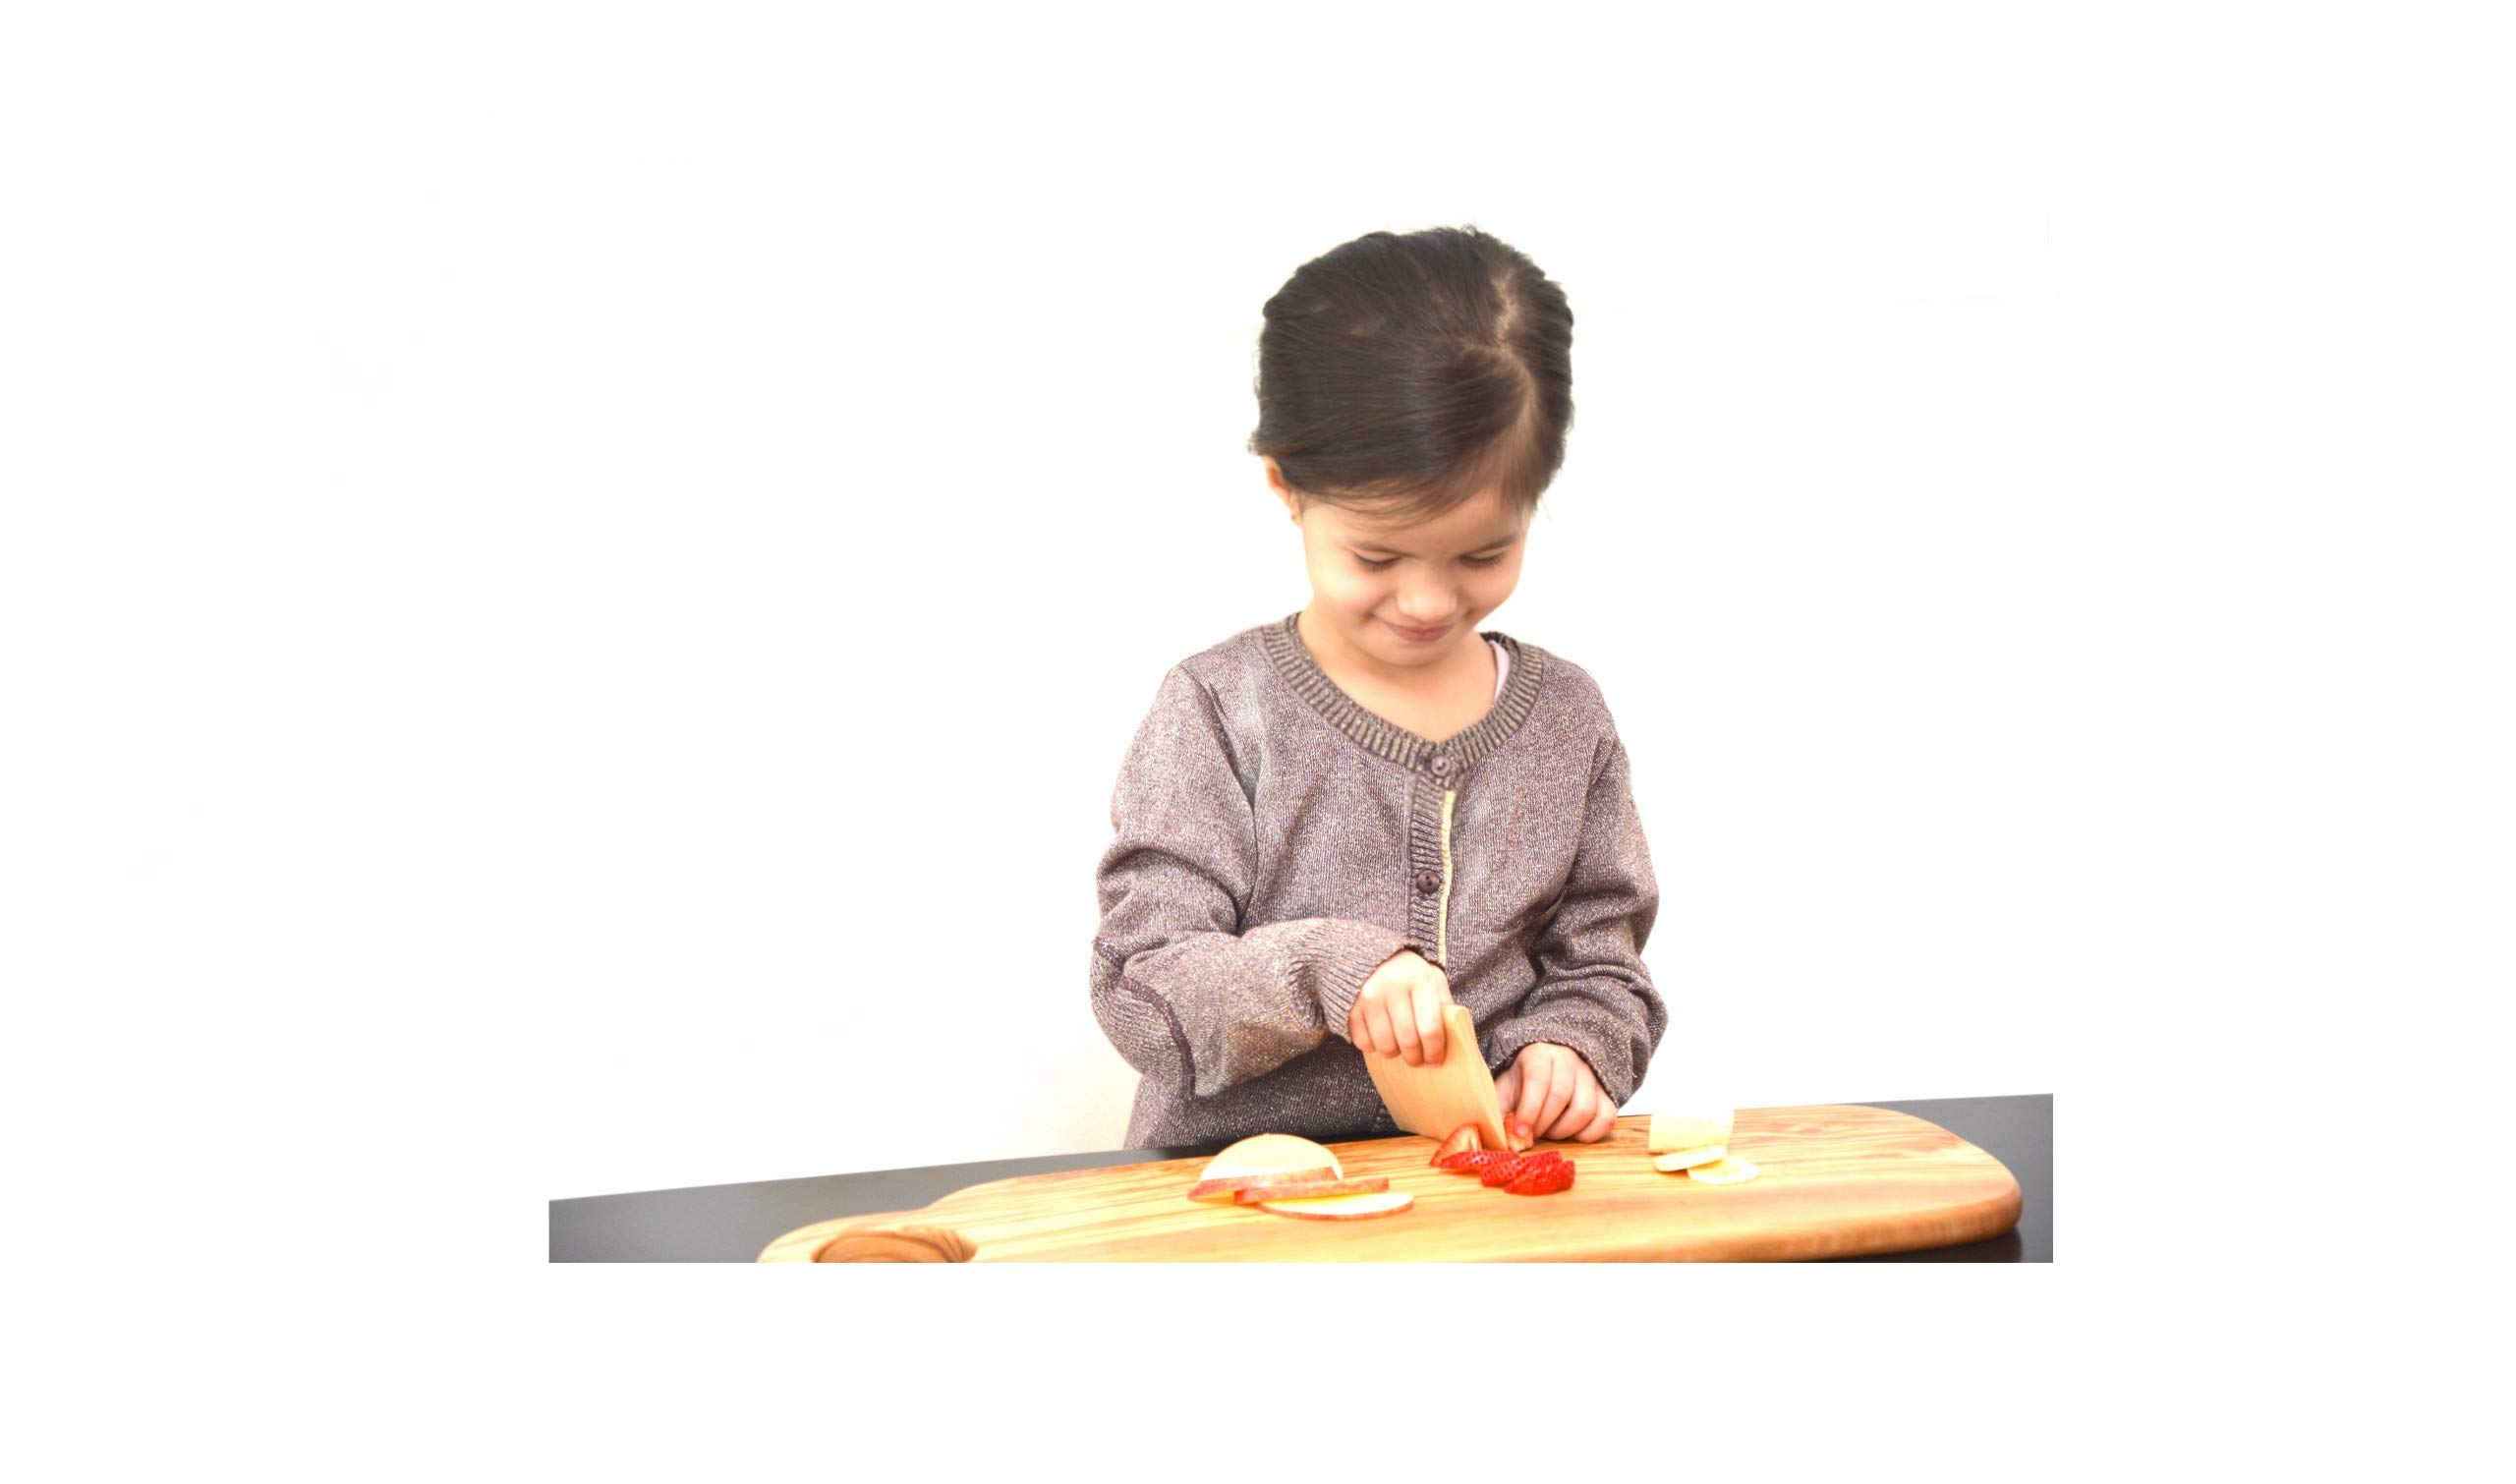 Safe Maple Wood Kids Knife - Fruit and Vegetable Cutter for Kids Cooking